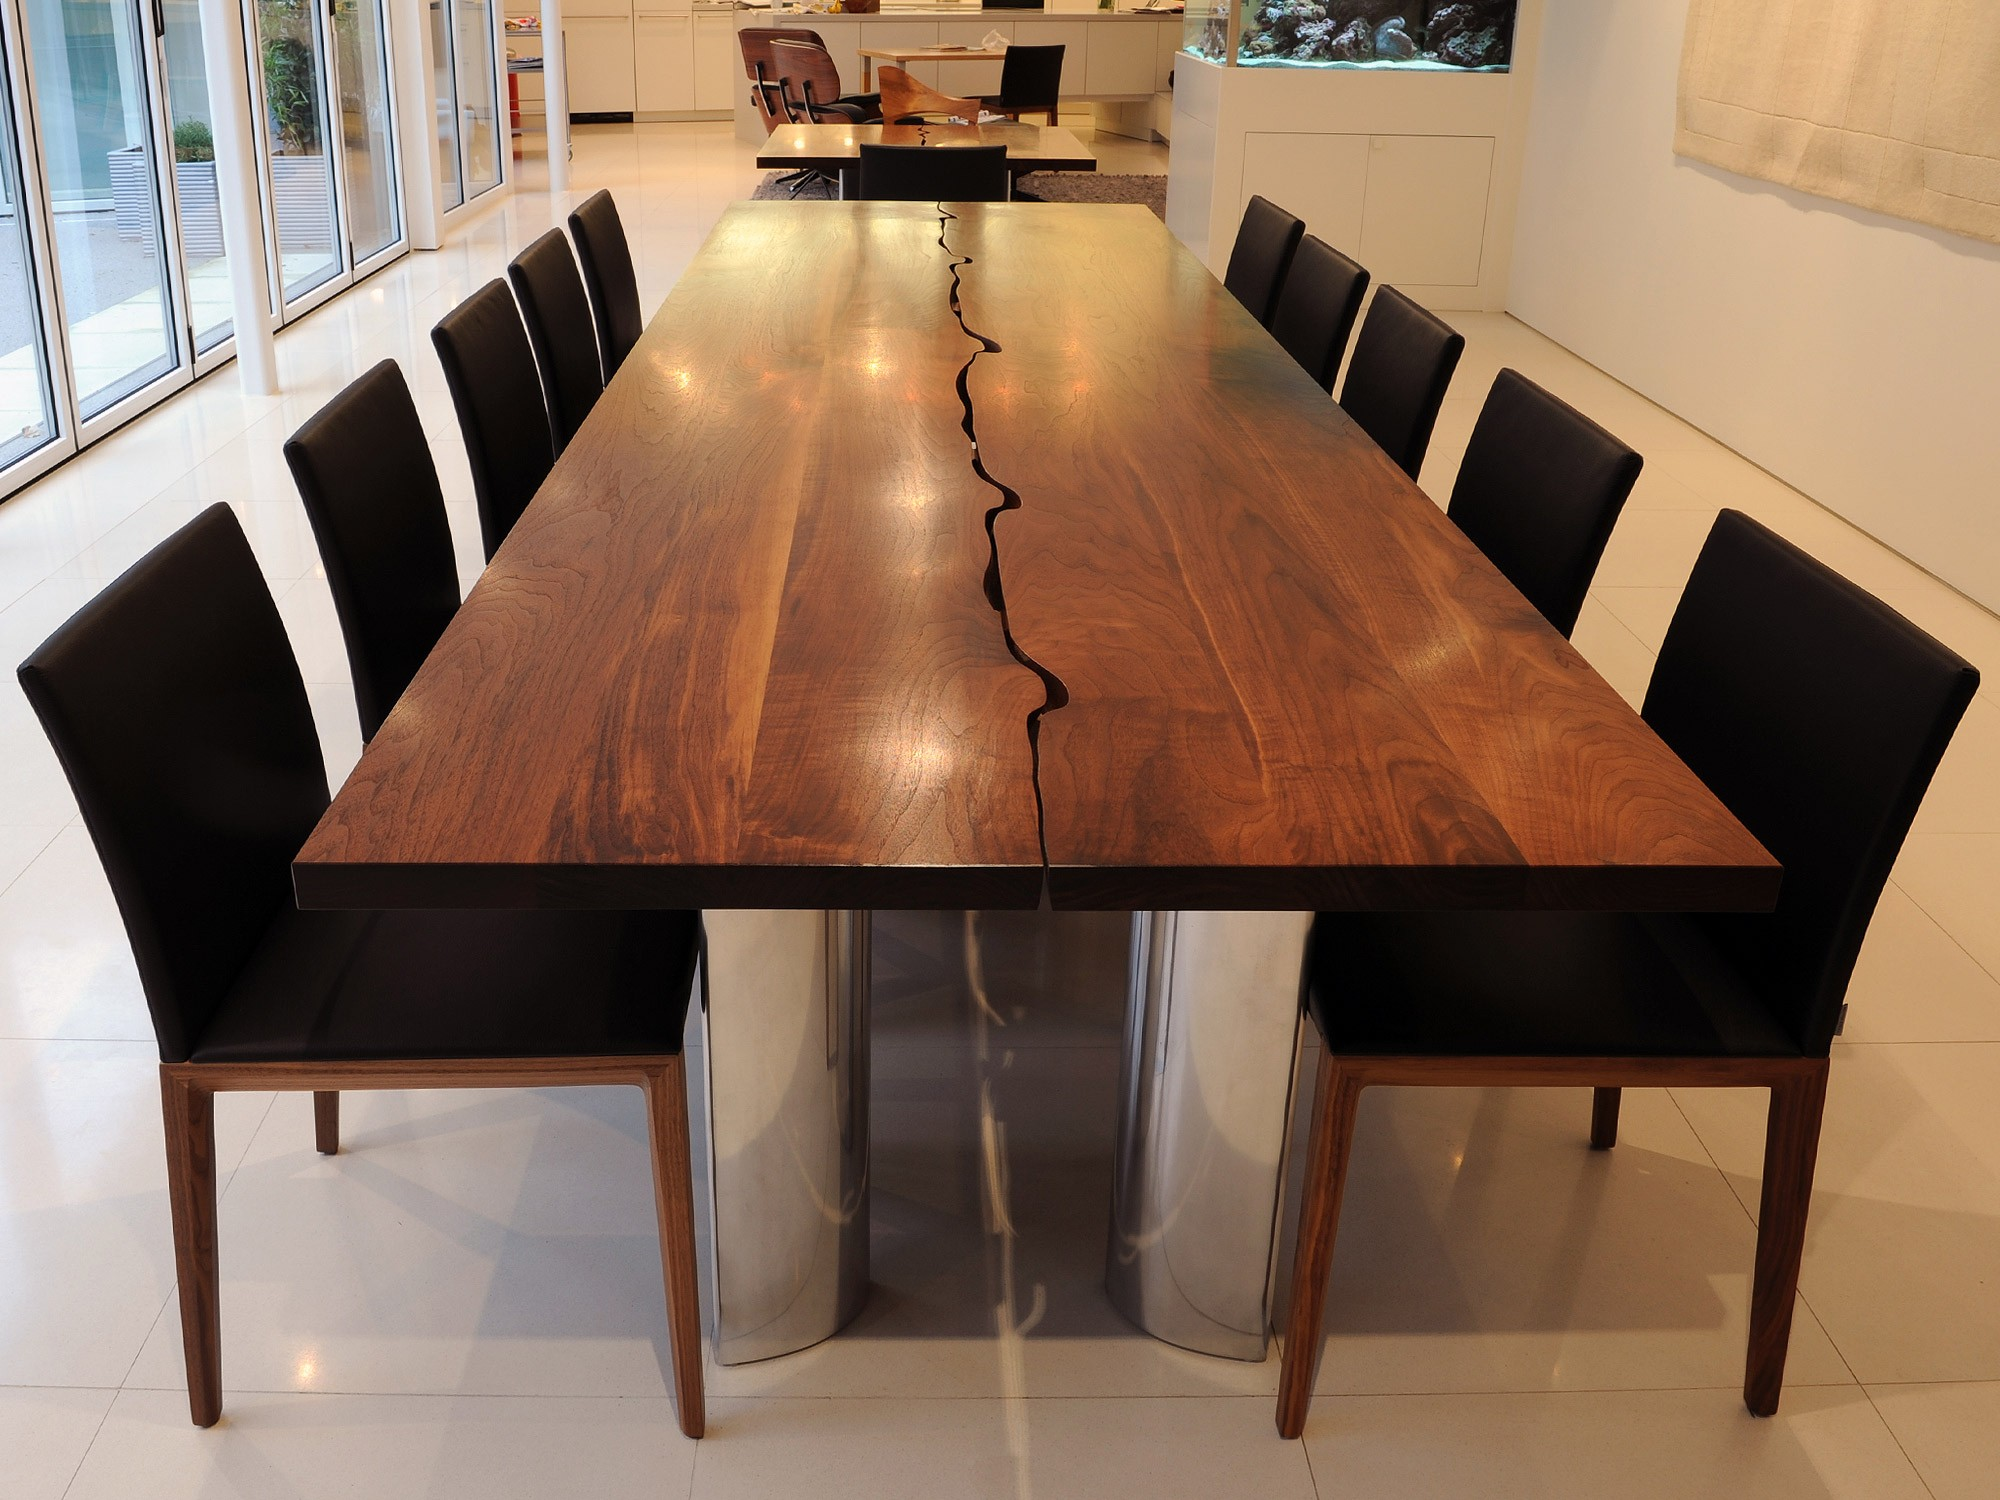 wood dining table ... unbelievable design modern wood dining room table 4 modern wood dining IILHHBO